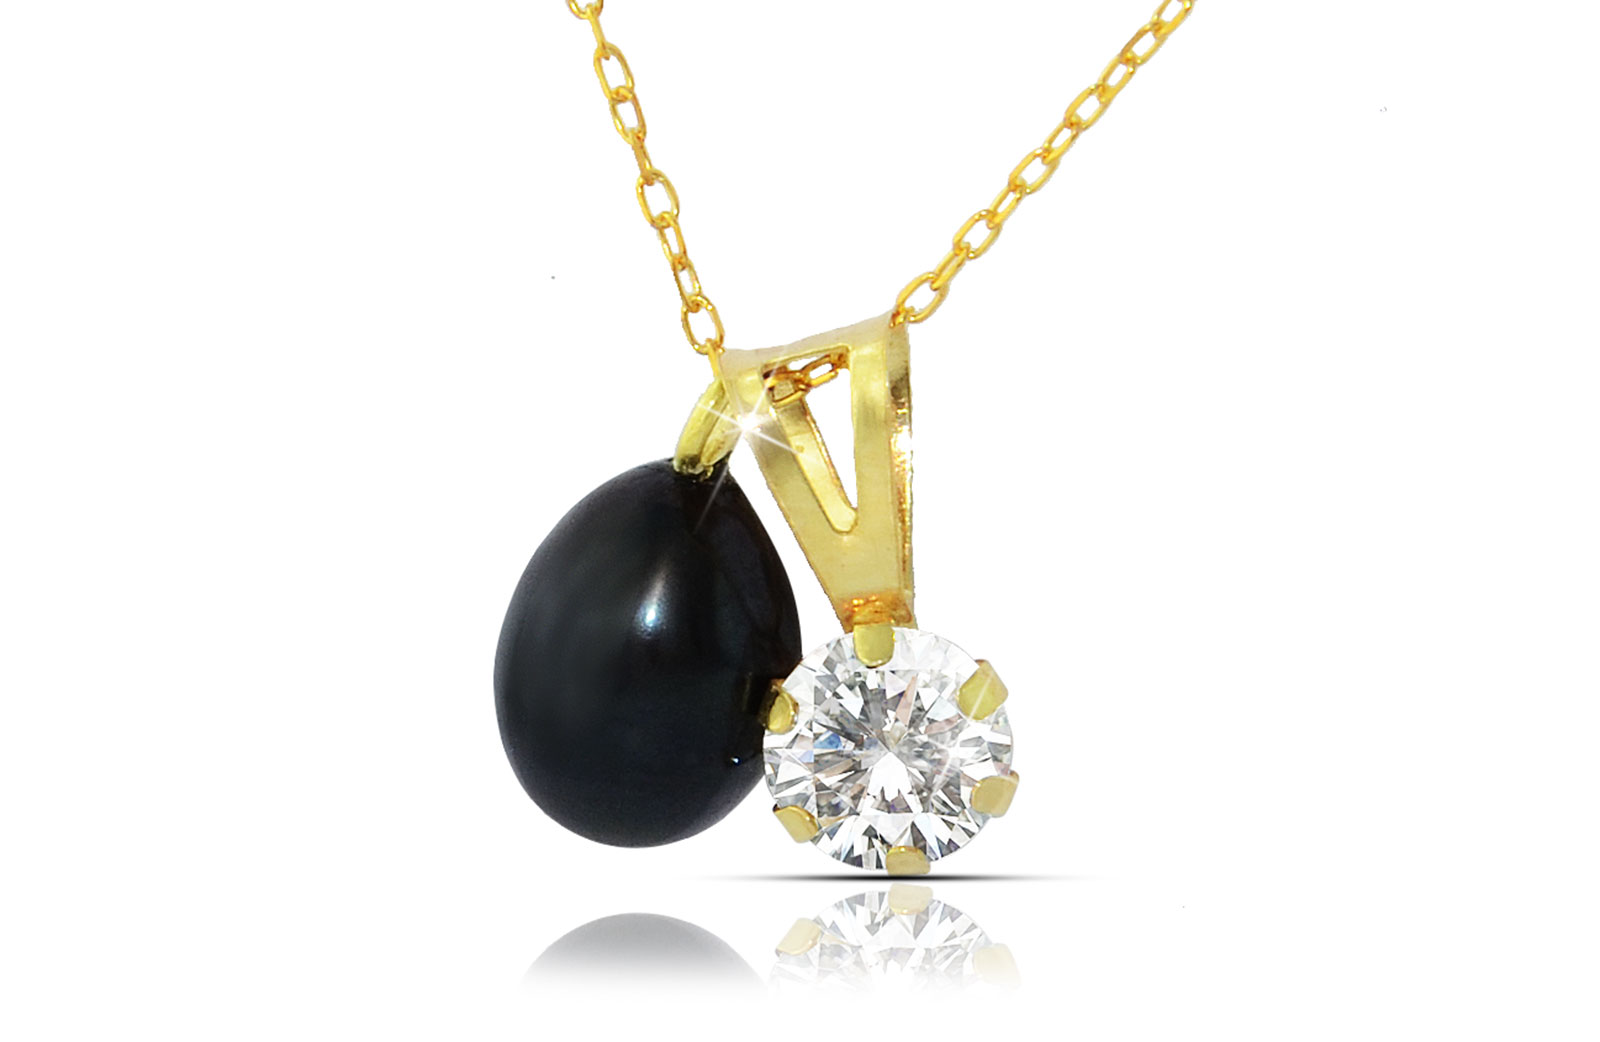 Vera Perla 18k Solid Gold 7mm Black Pearl and CZ Solitaire Pendants Necklace